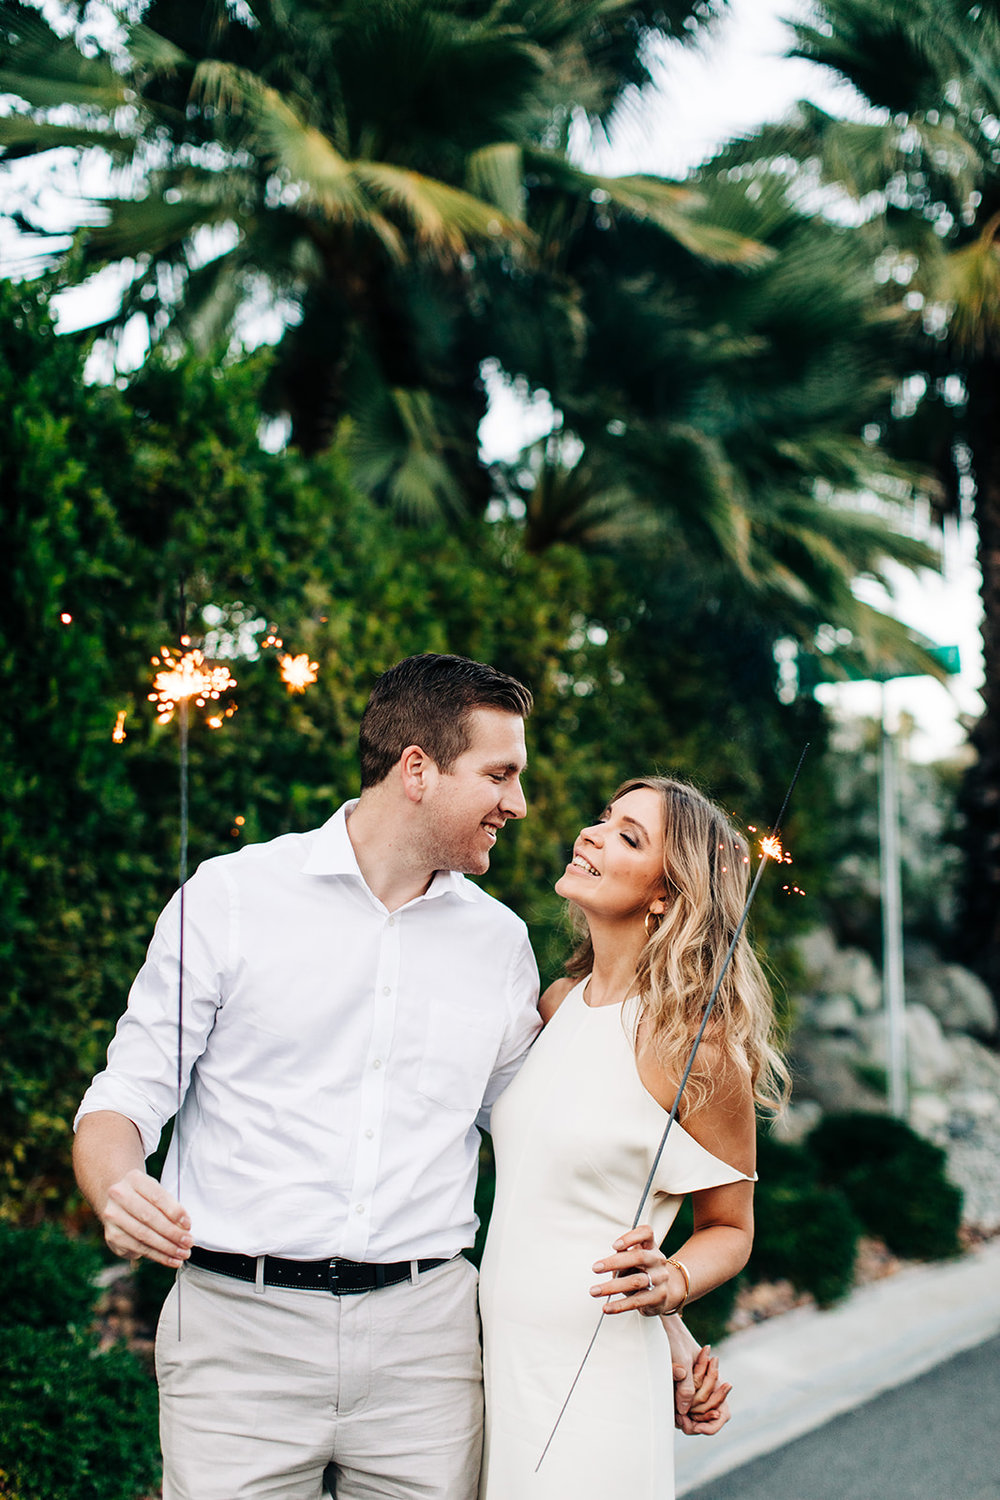 Paulina-Drew_Palm-Springs-Engagement-Photos_Clarisse-Rae_Southern-California-Wedding-Photographer-46